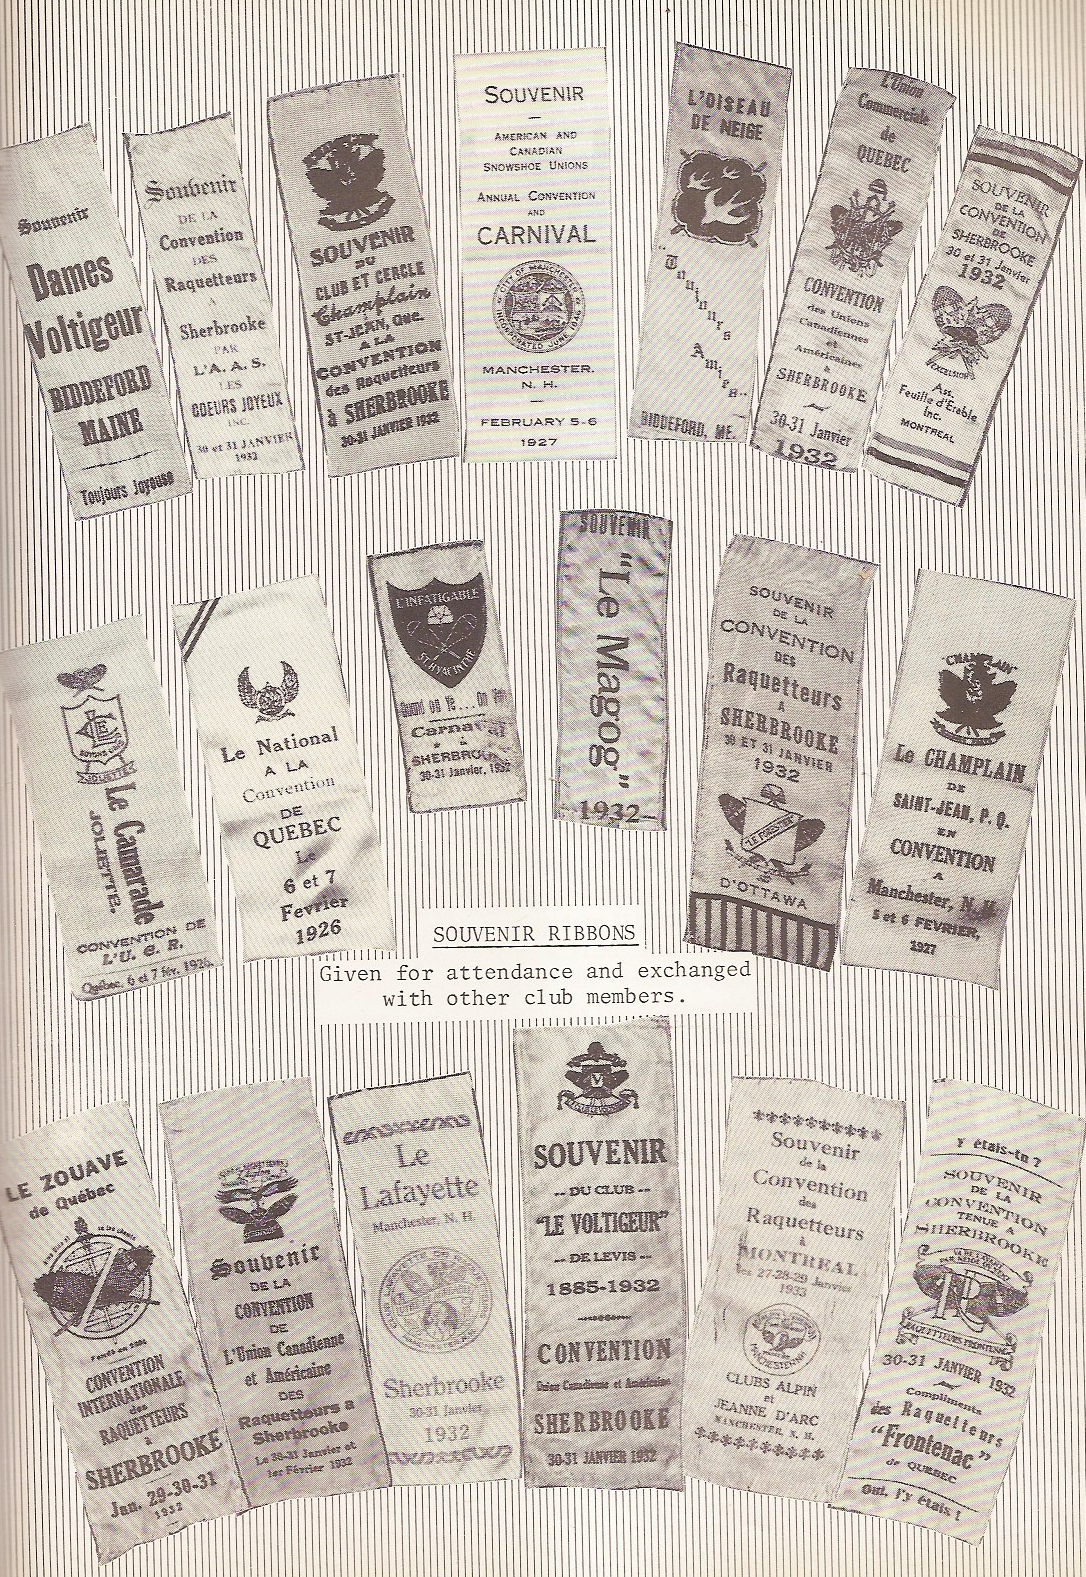 Snowshoe Club Ribbons